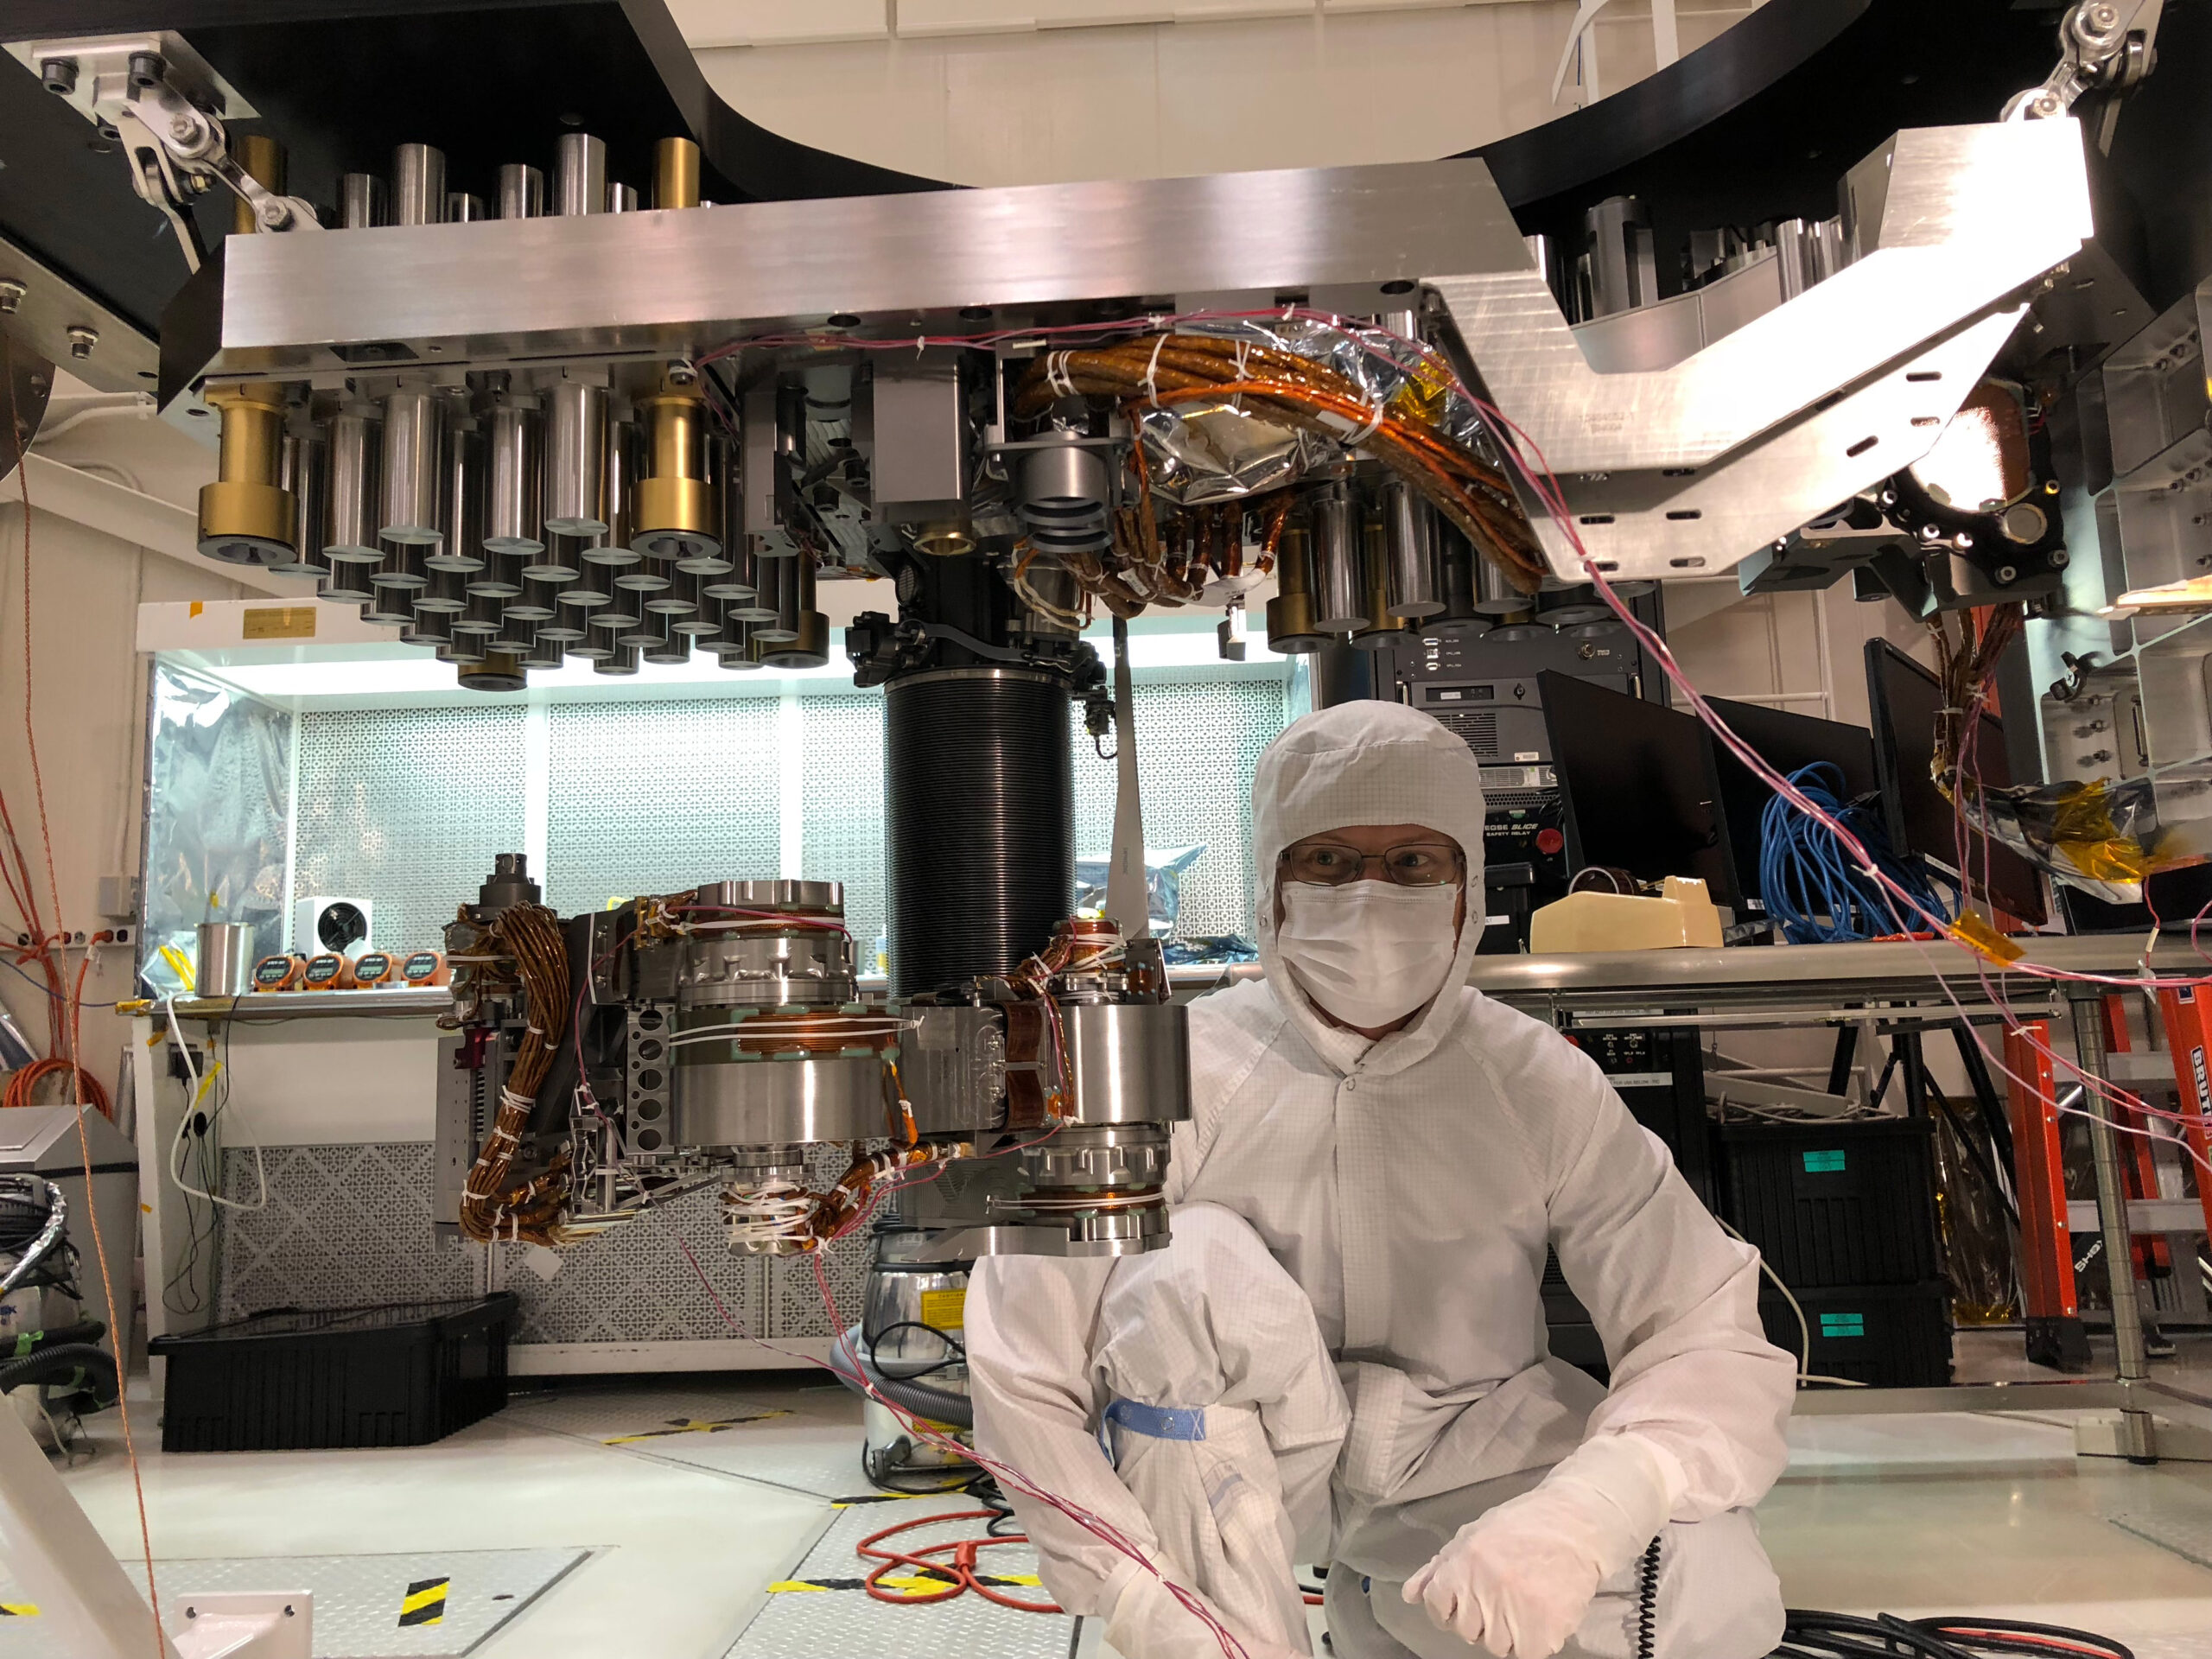 silverman working in the lab